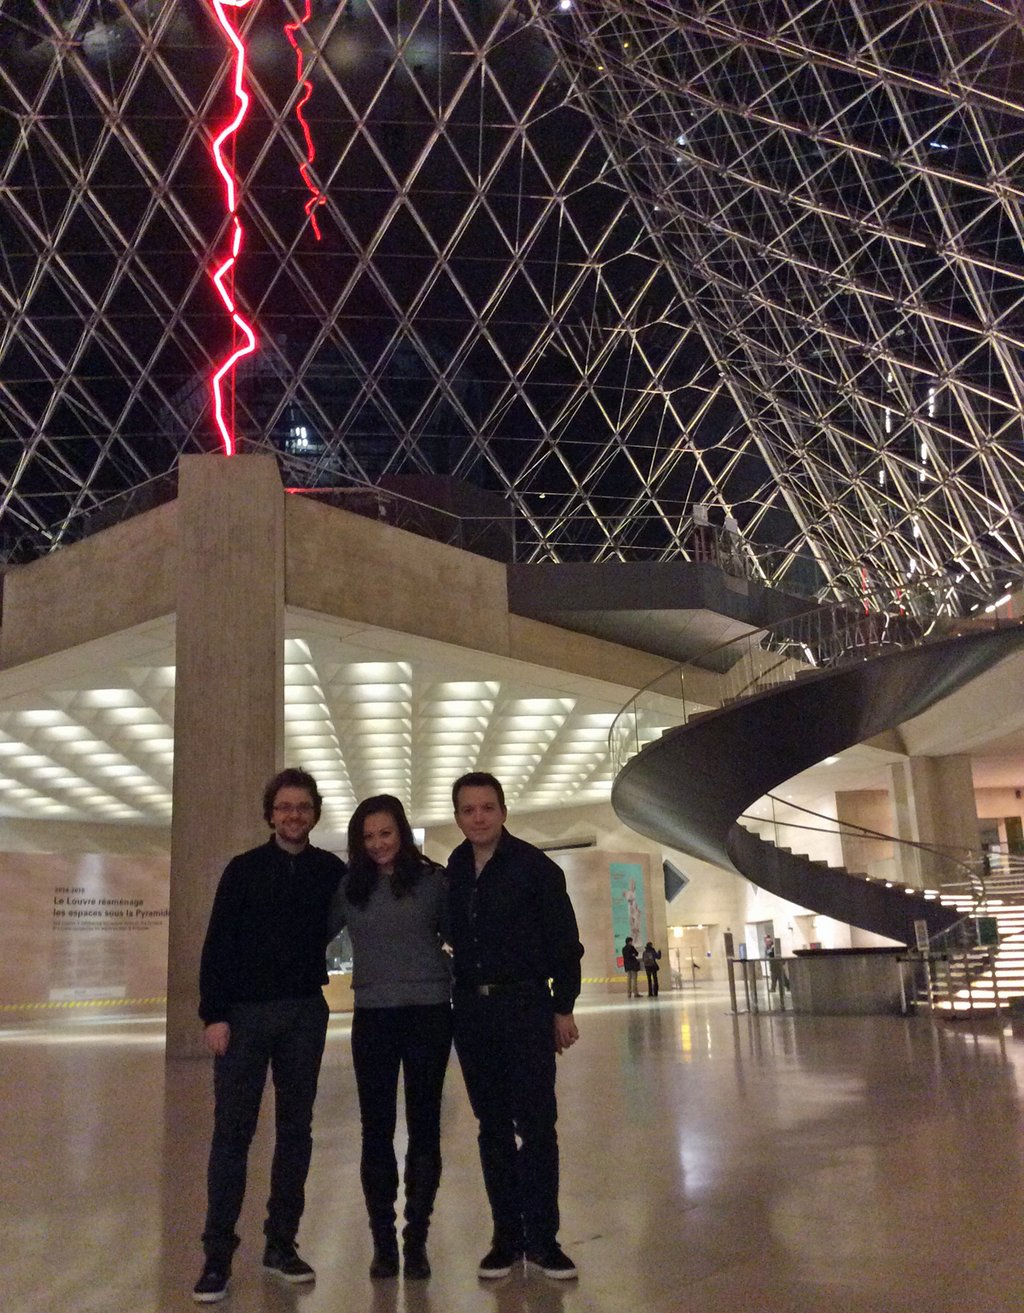 The Sitkovetsky Trio at the Louvre, before their performance of 'Butterflies Remember a Mountain'